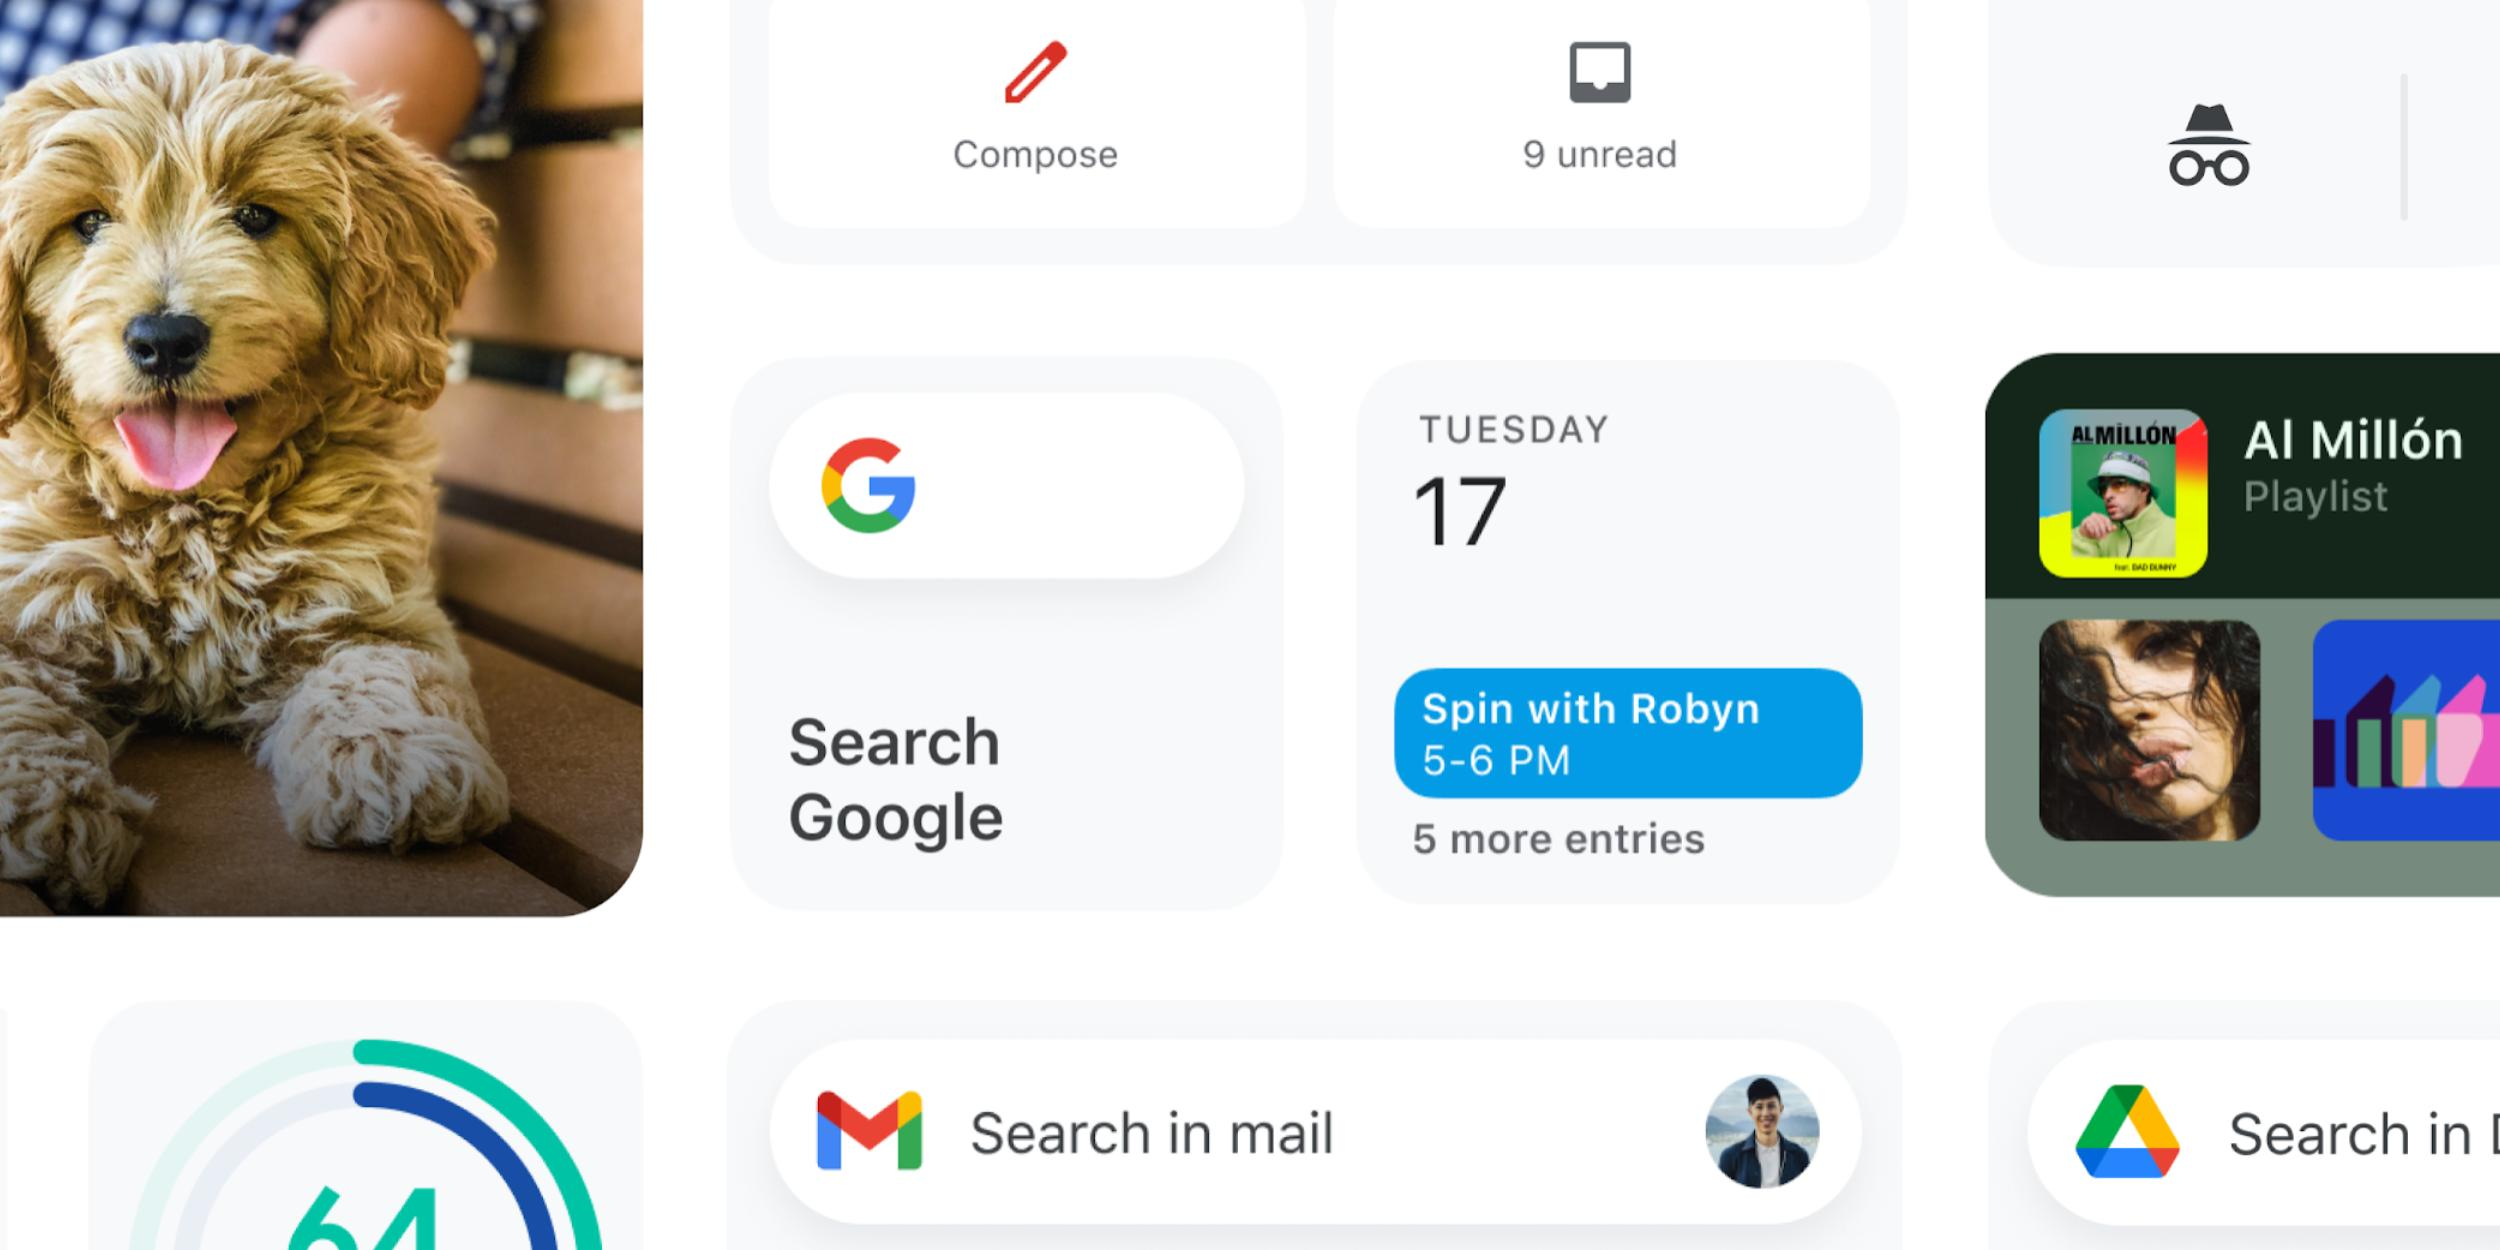 Google rolls out Drive and Fit iOS home screen widgets with Calendar, Chrome coming soon - 9to5Google